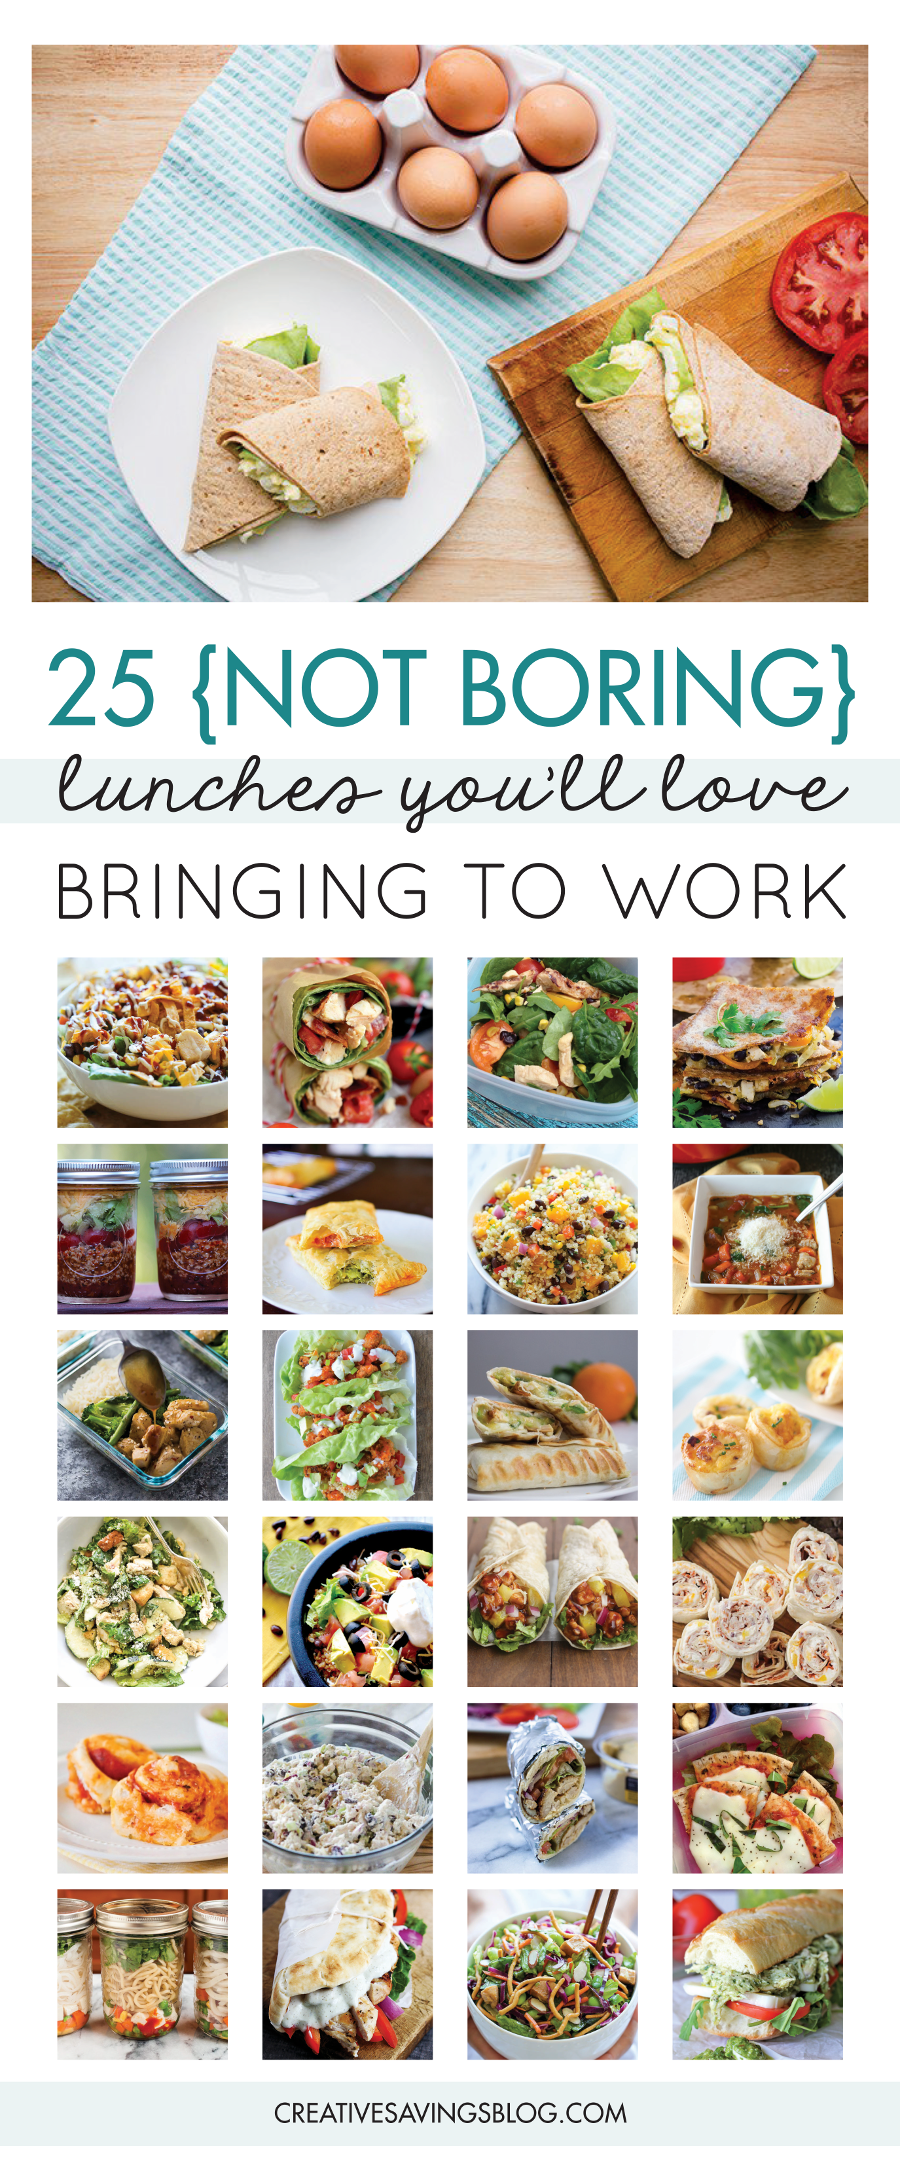 25 packed lunch ideas & clever strategies to avoid eating out at